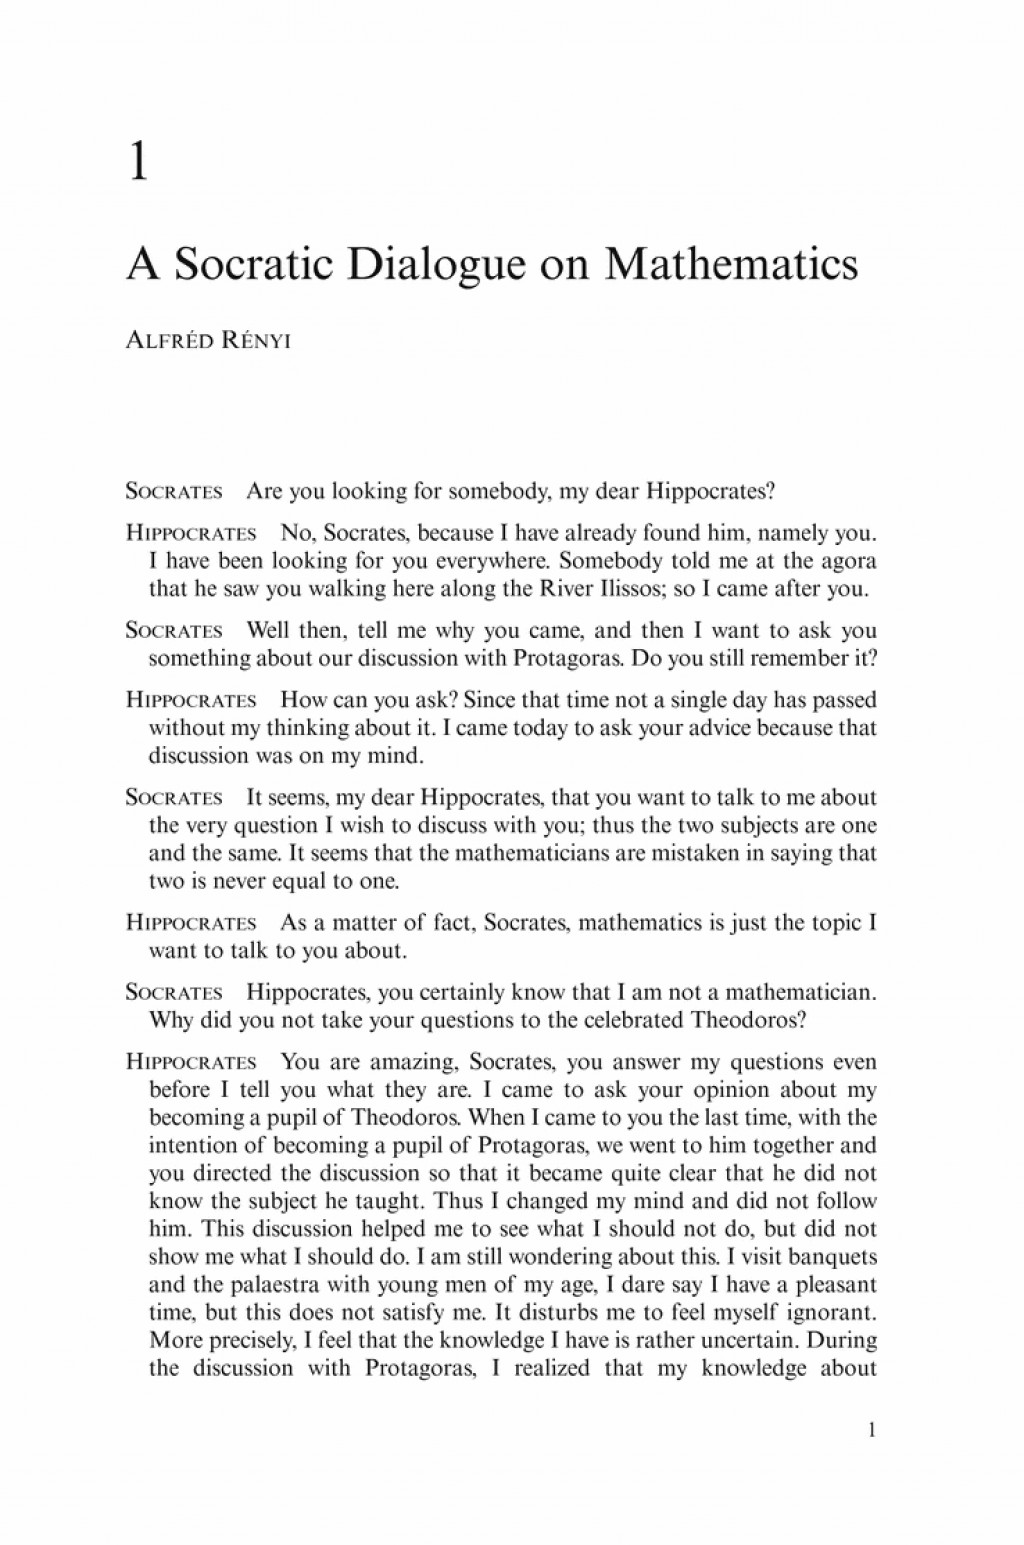 002 Essay Example Dialogue Socratic On Mathematics Springer L Awful Dialog Examples Format Sample Large